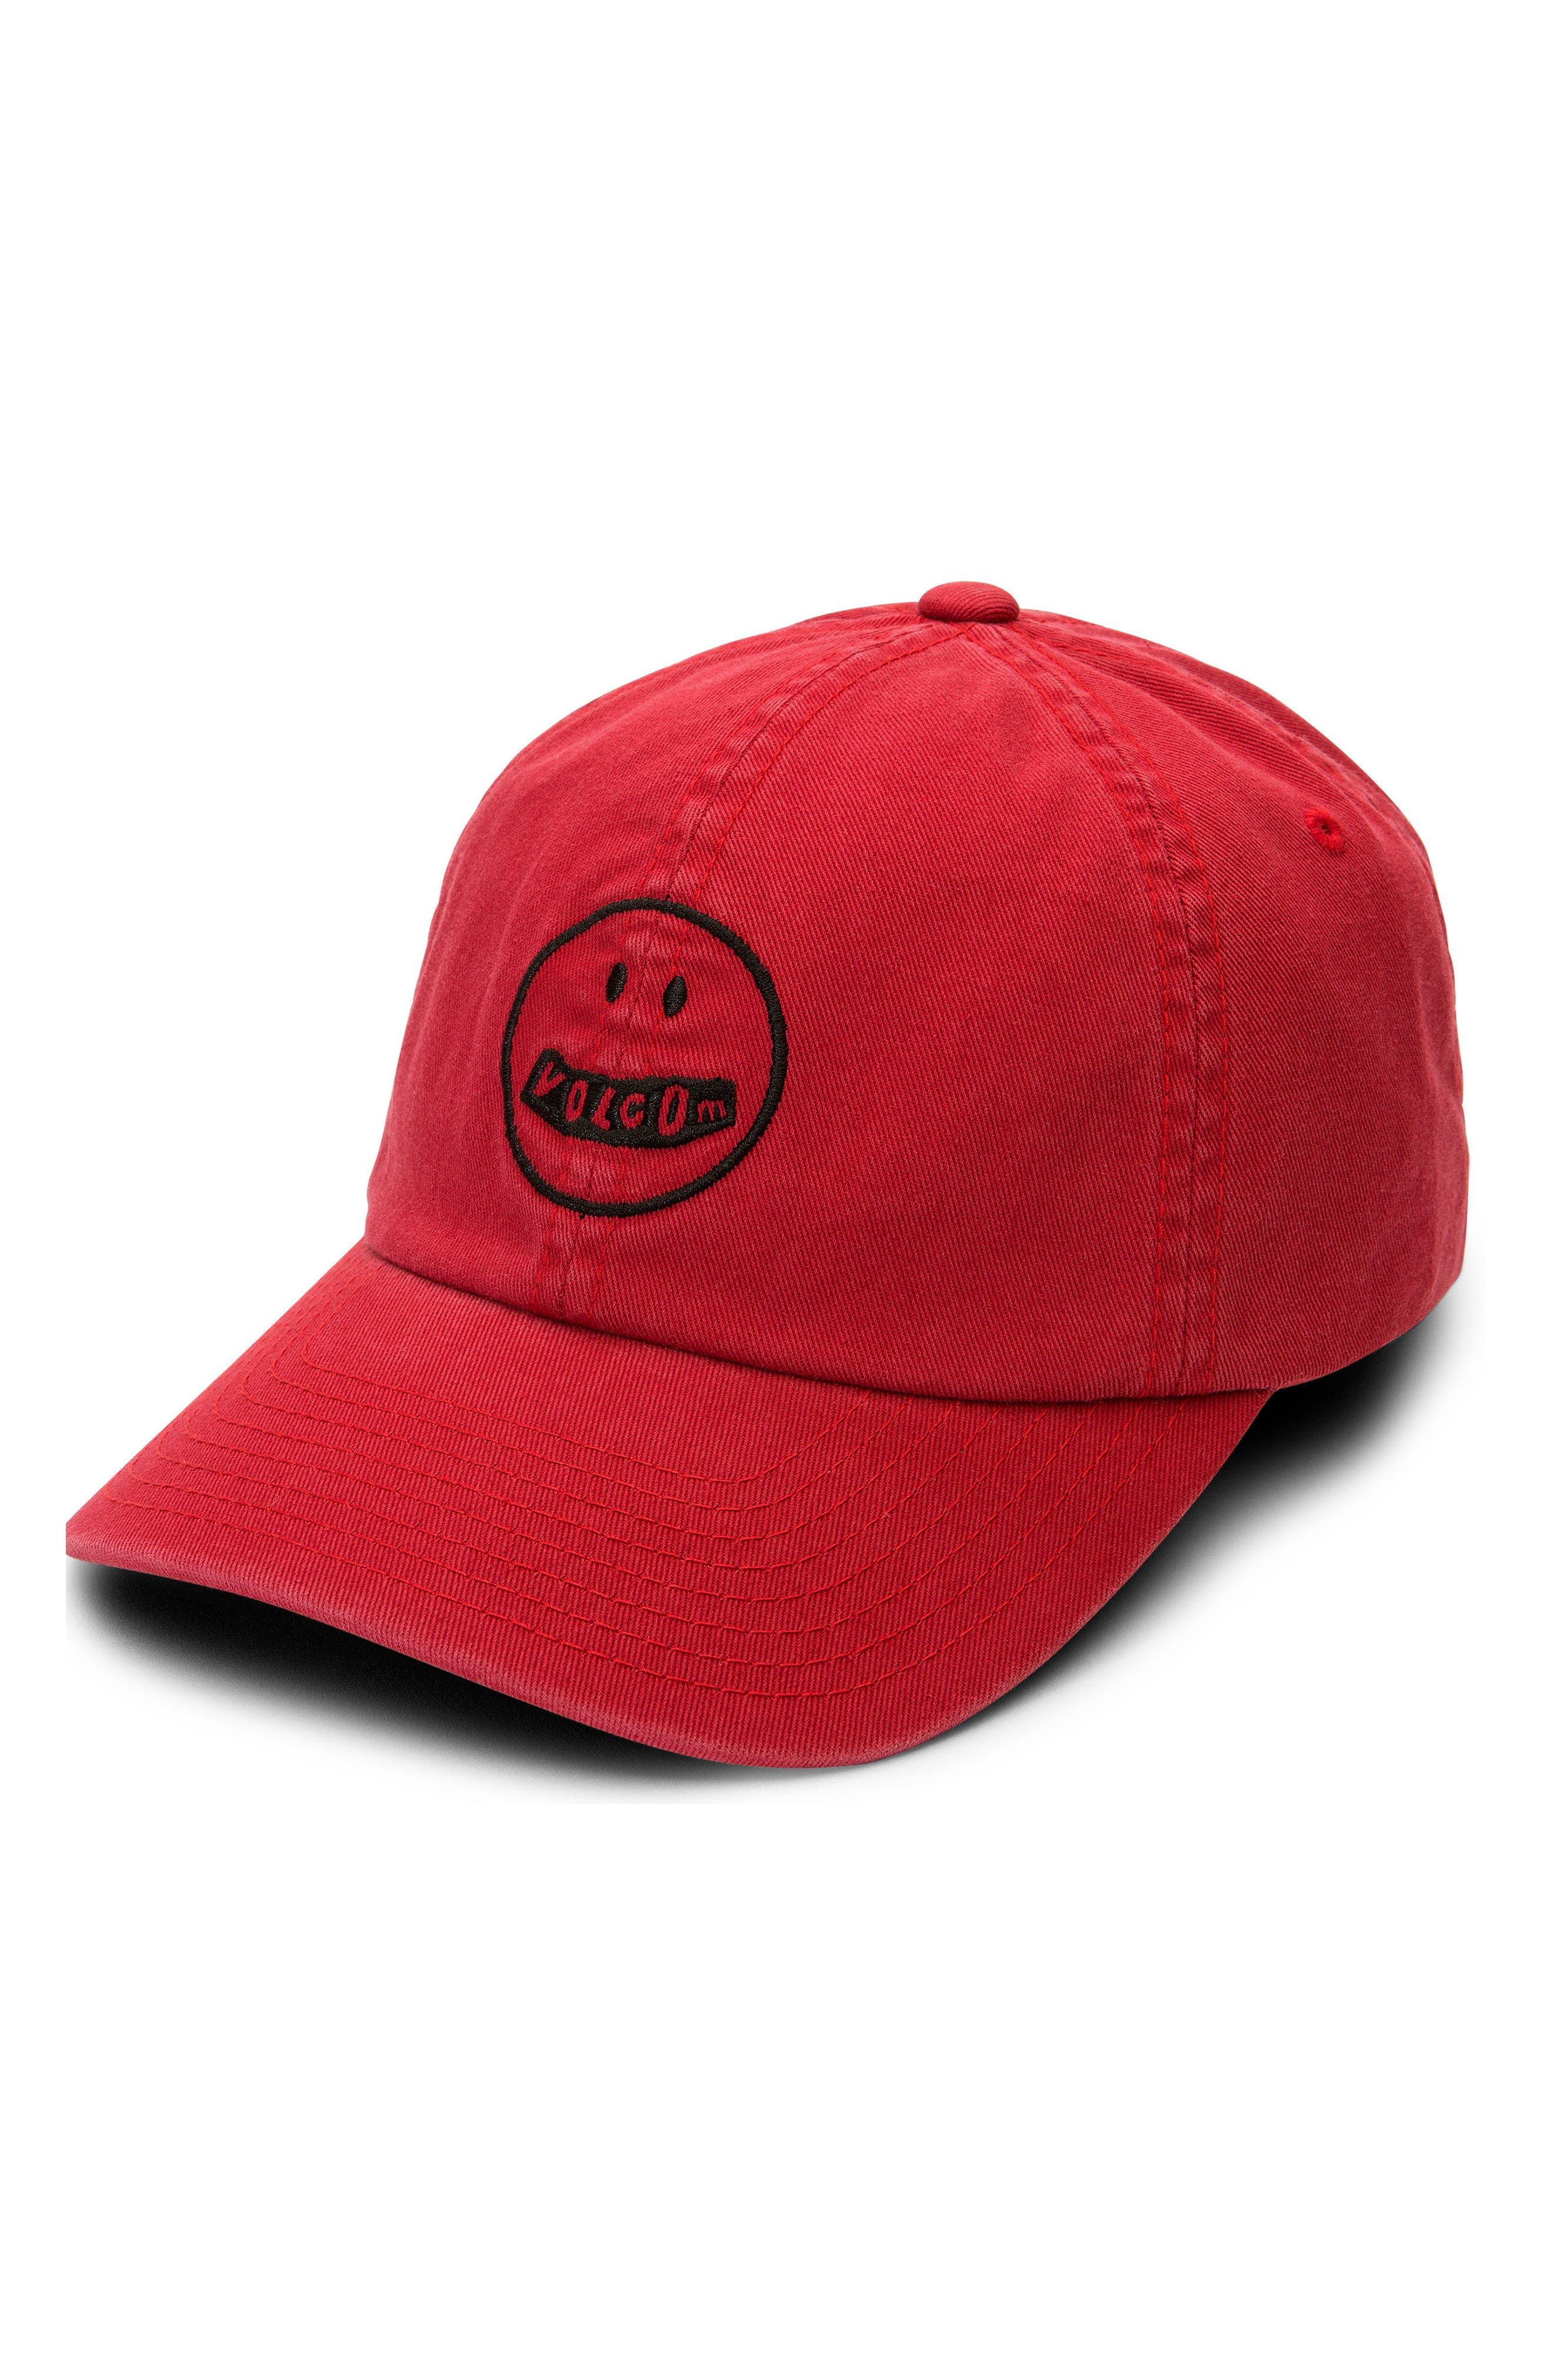 Good Mood Dad Baseball Hat,                             Main thumbnail 1, color,                             Red Chili